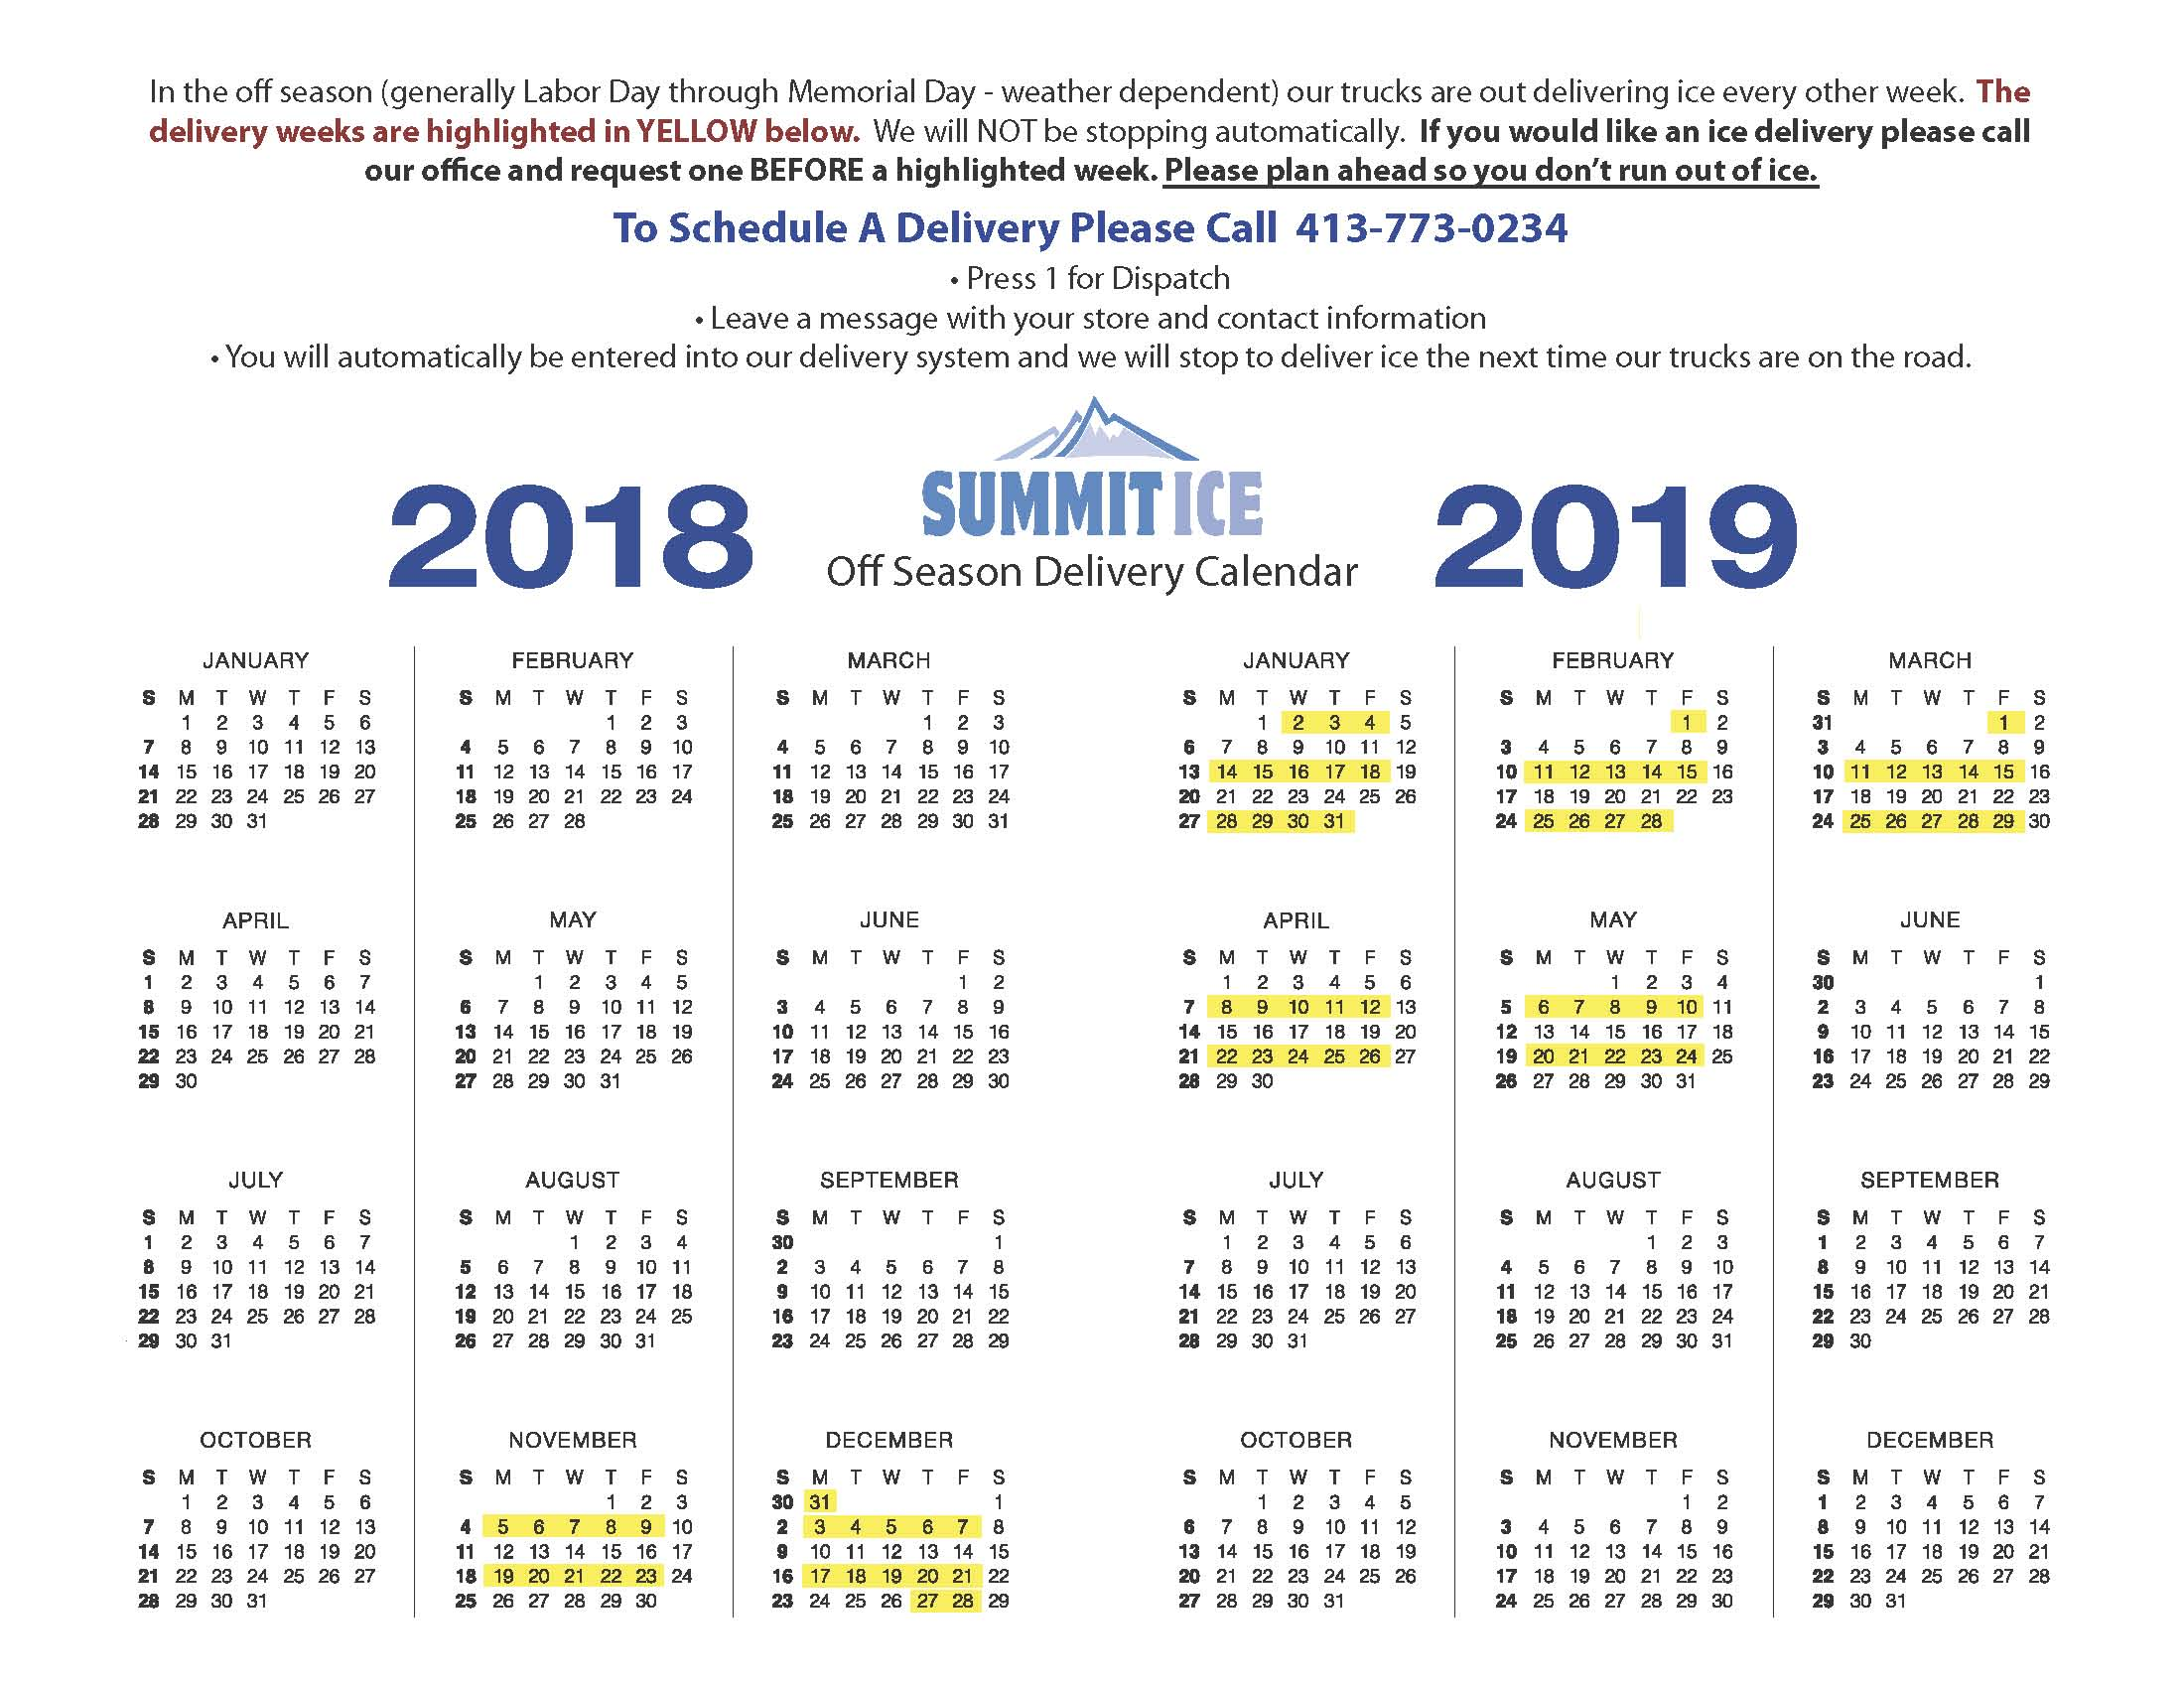 PRINTsummit customer delivery calendar 2018.jpg